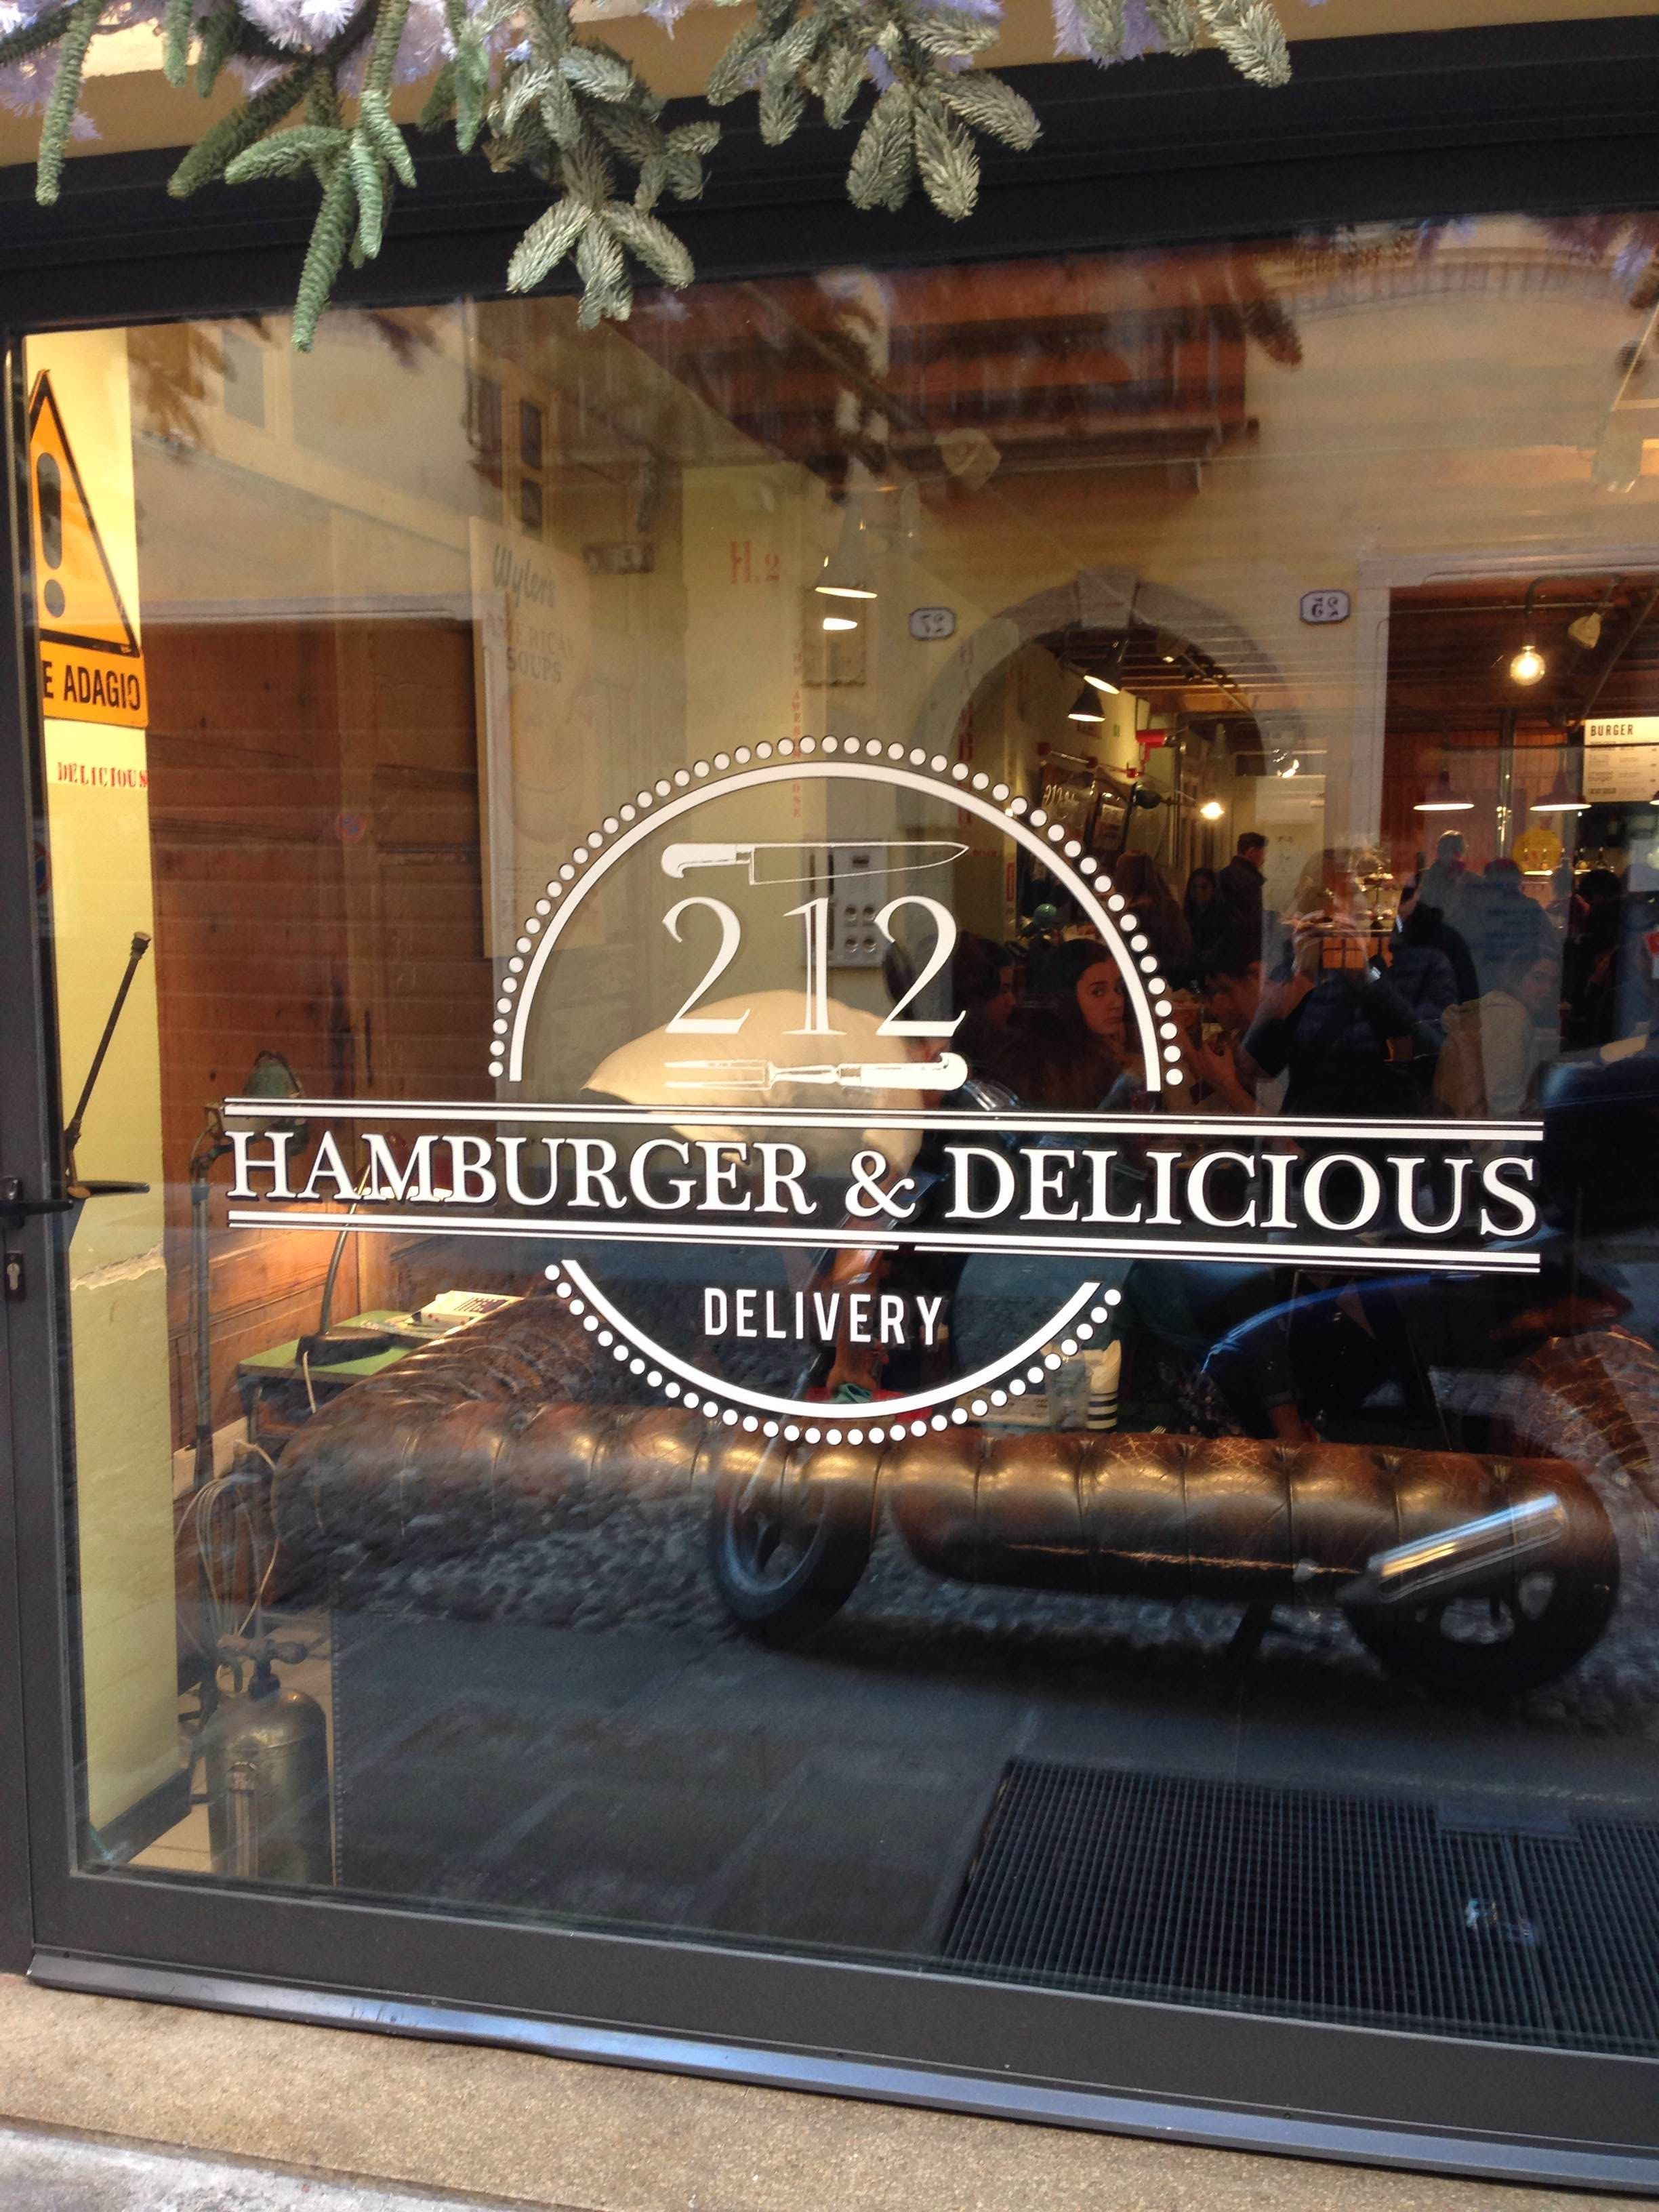 Vehicle in 212 Hamburger & Delicious